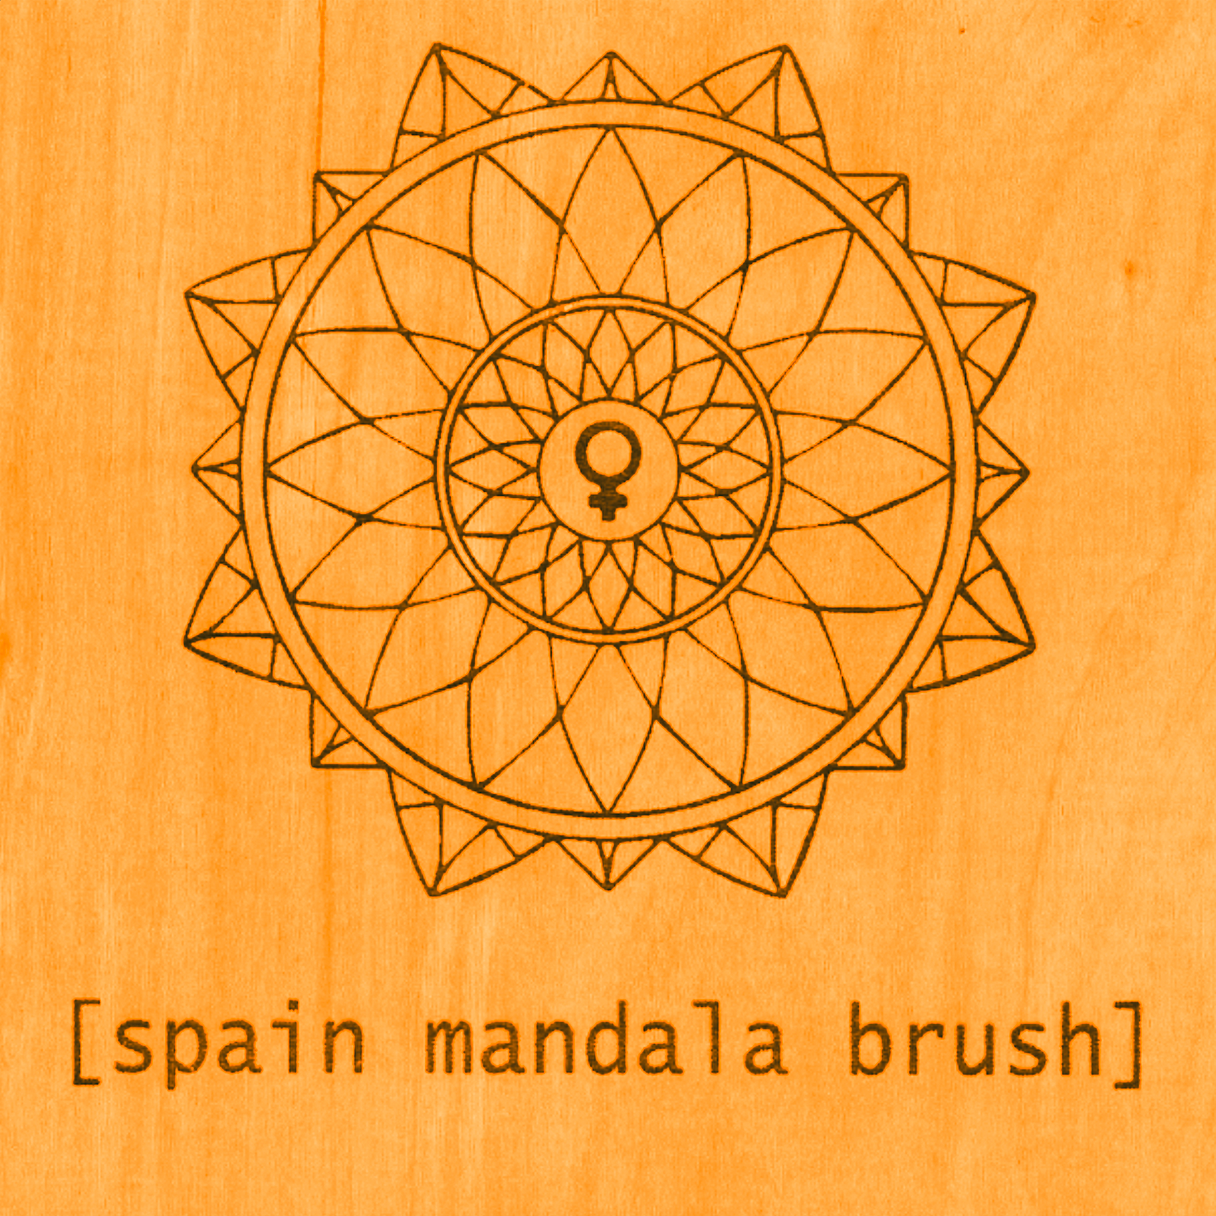 spain-mandala-brush